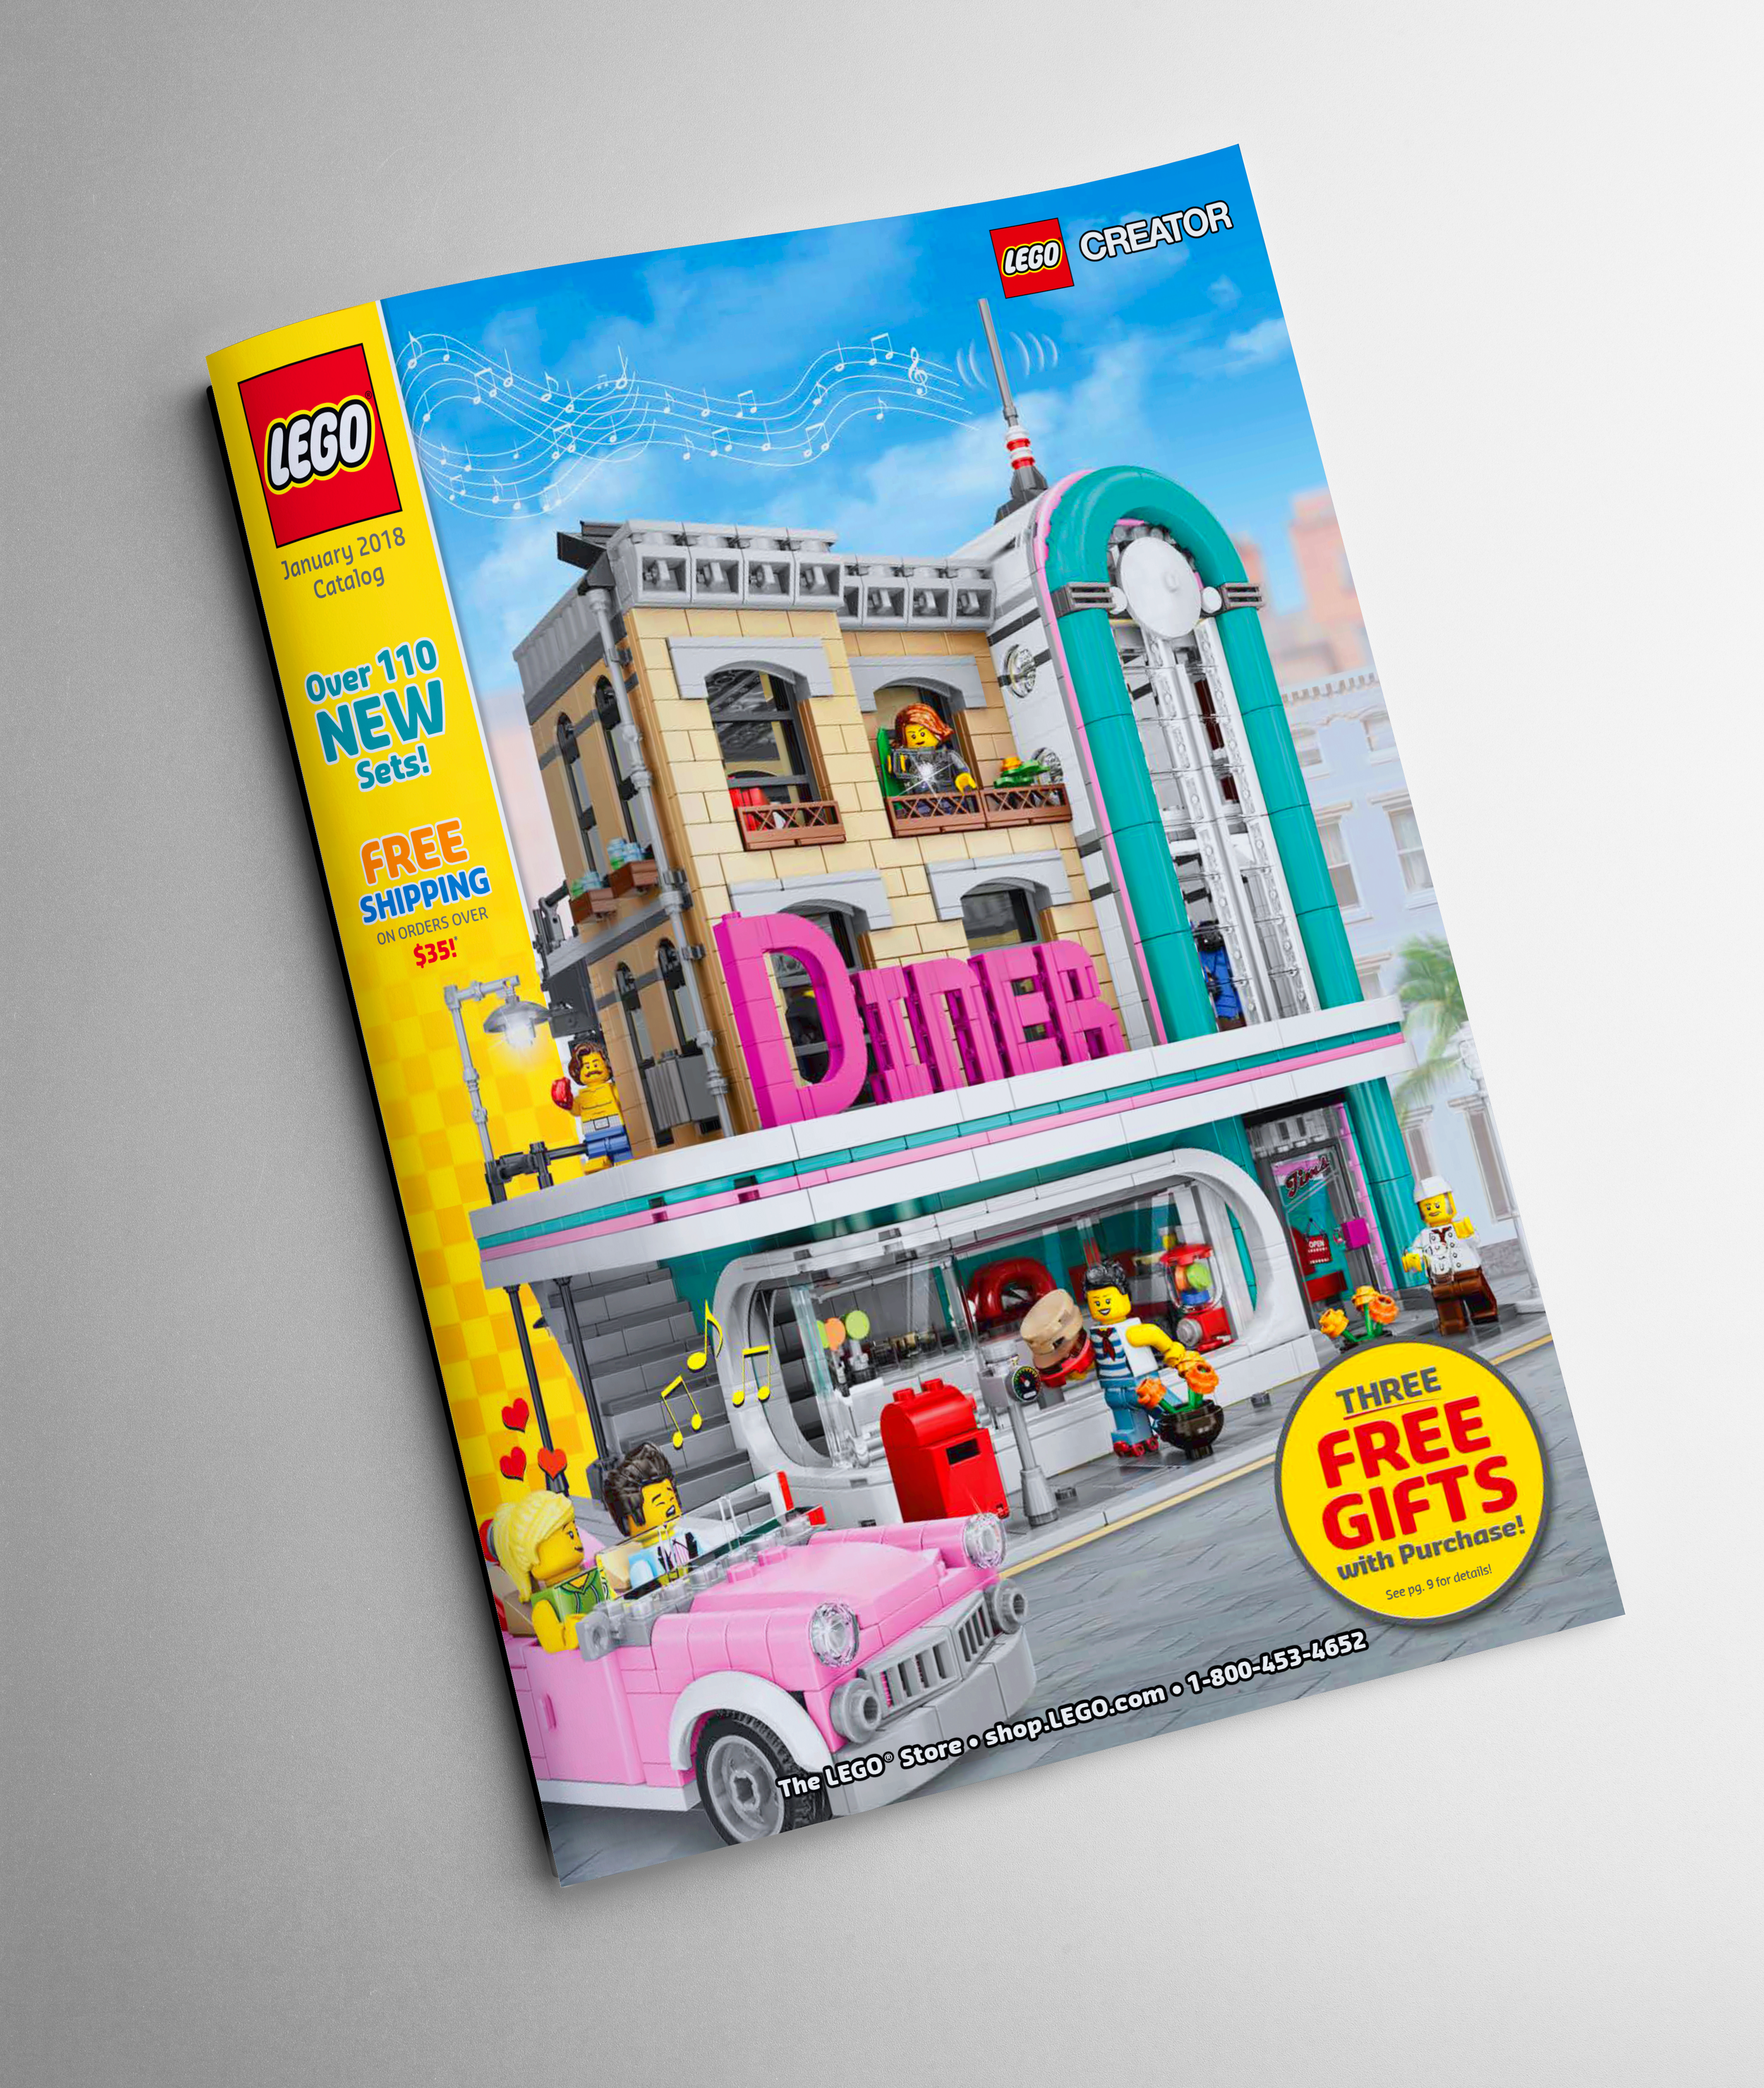 2018 January Cover   This is a straight forward design and most of the catalog covers like to showcase a new product; while also telling a story and bringing the mini-figures to life.